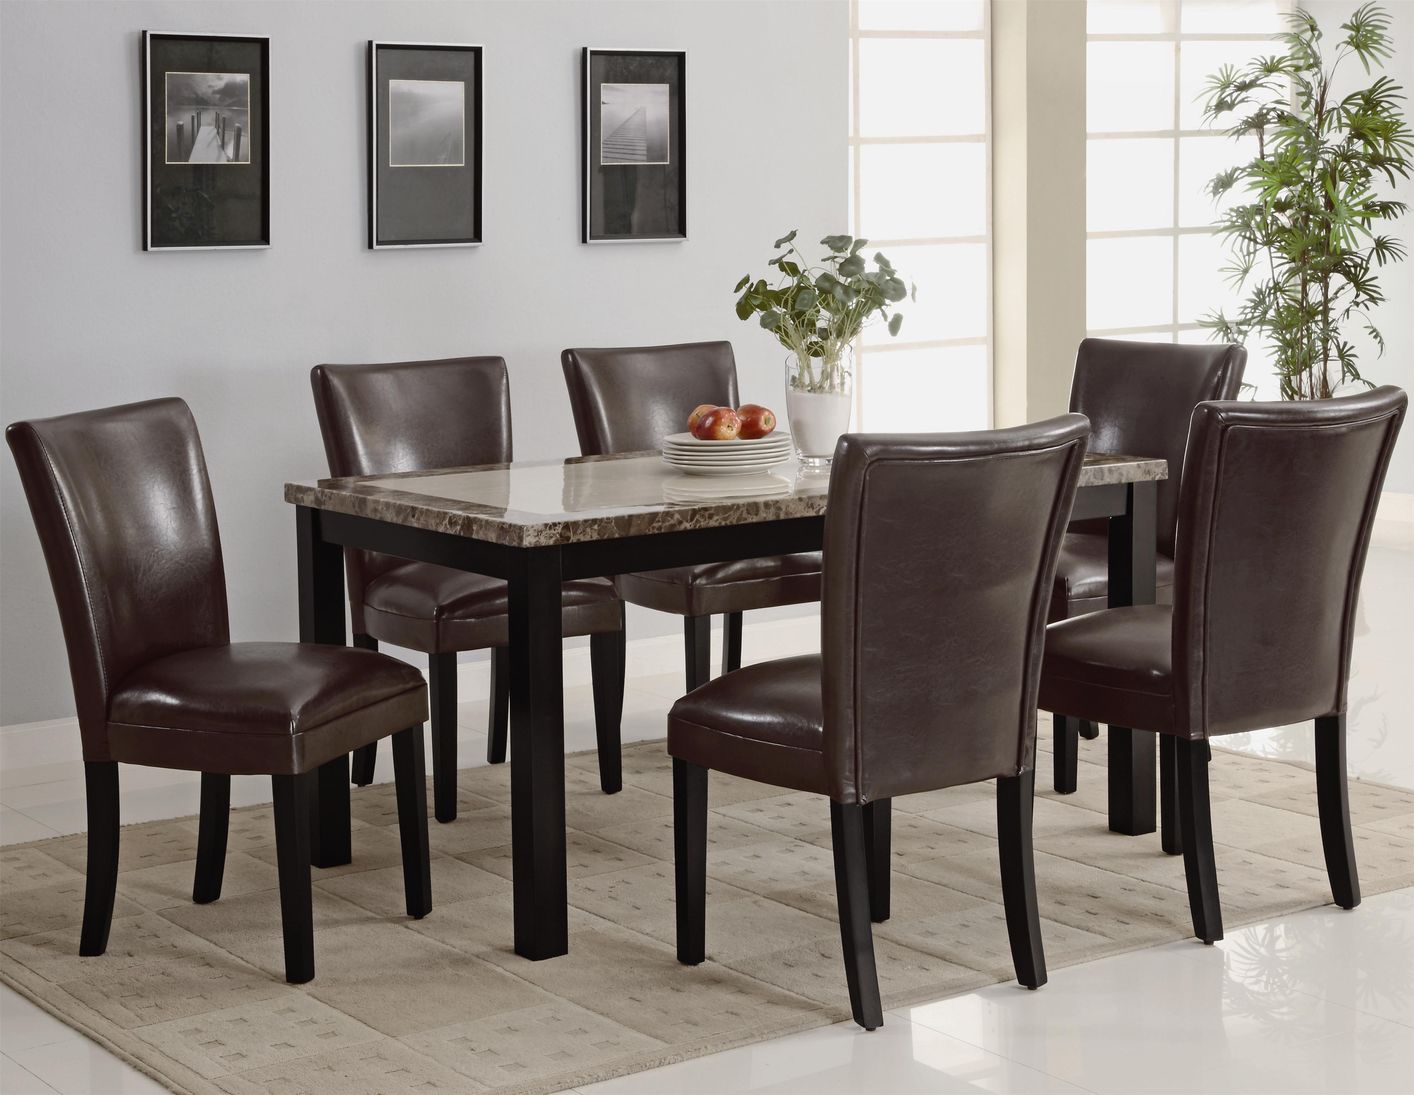 Coaster carter 102260 102263 brown wood and marble dining for Wood dining table set